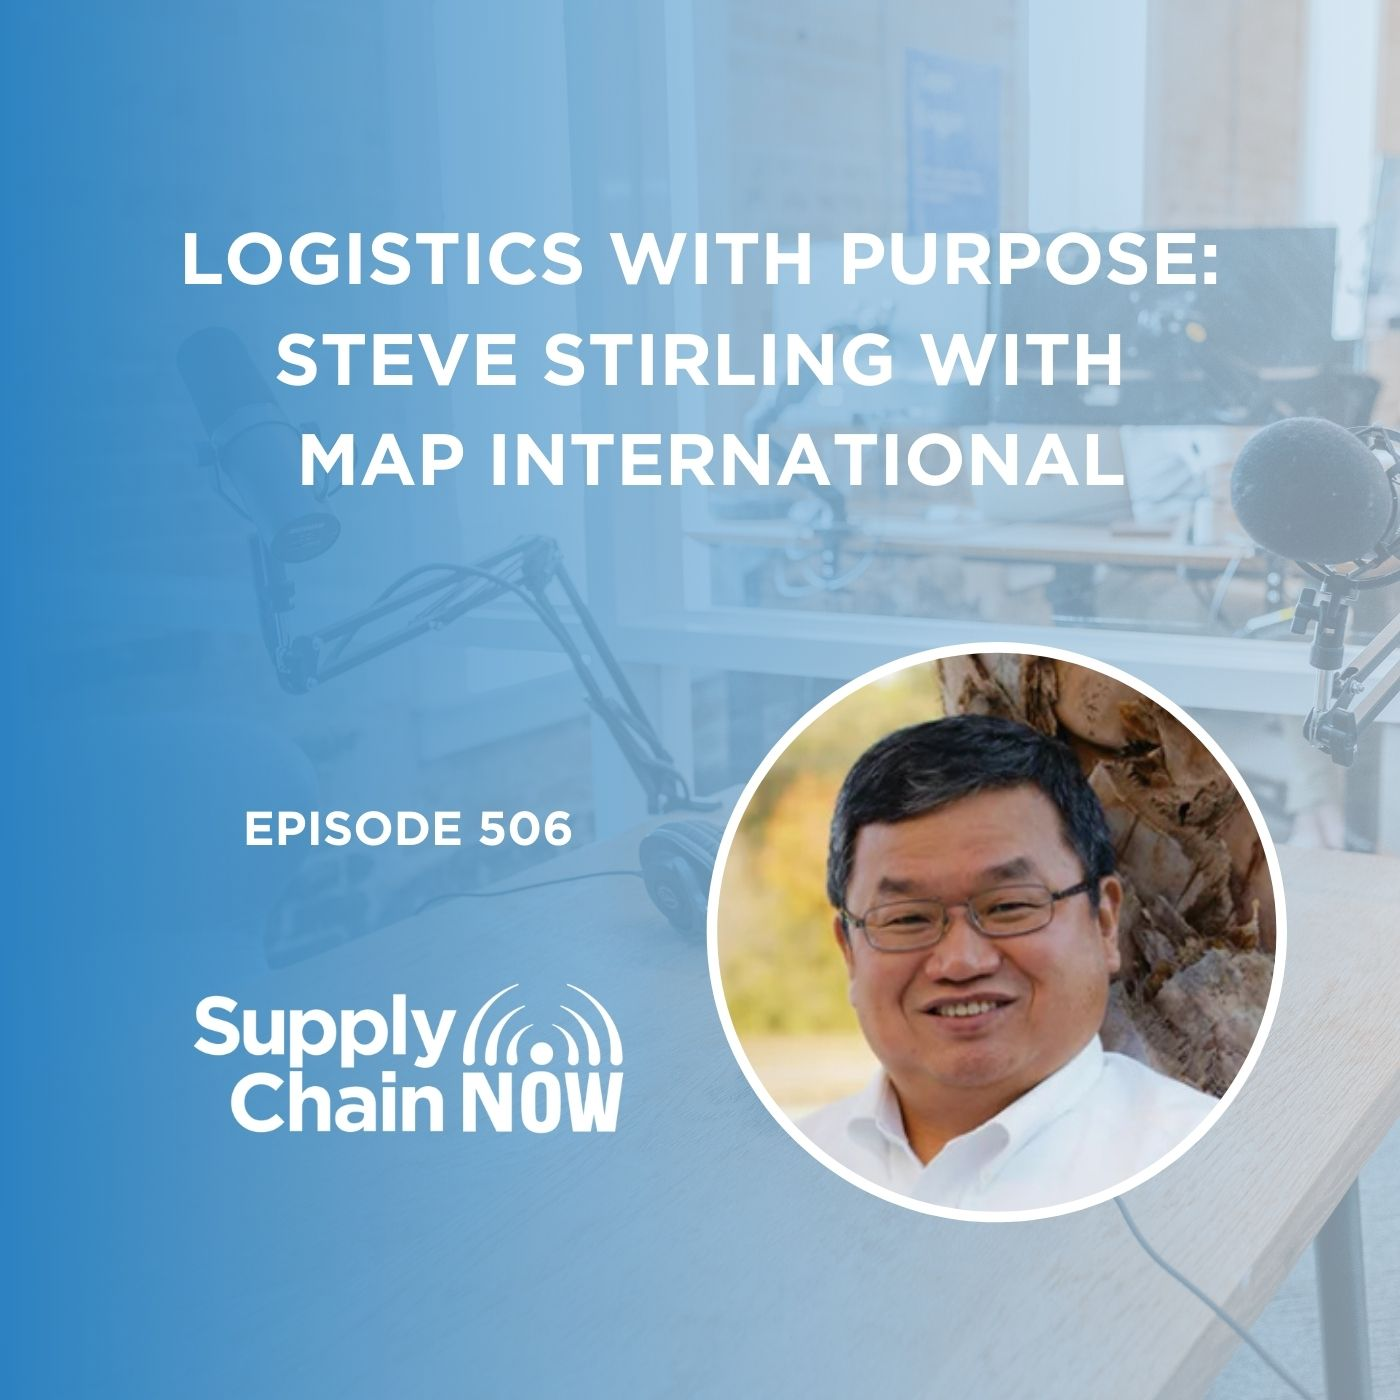 Logistics with Purpose: Steve Stirling with MAP International